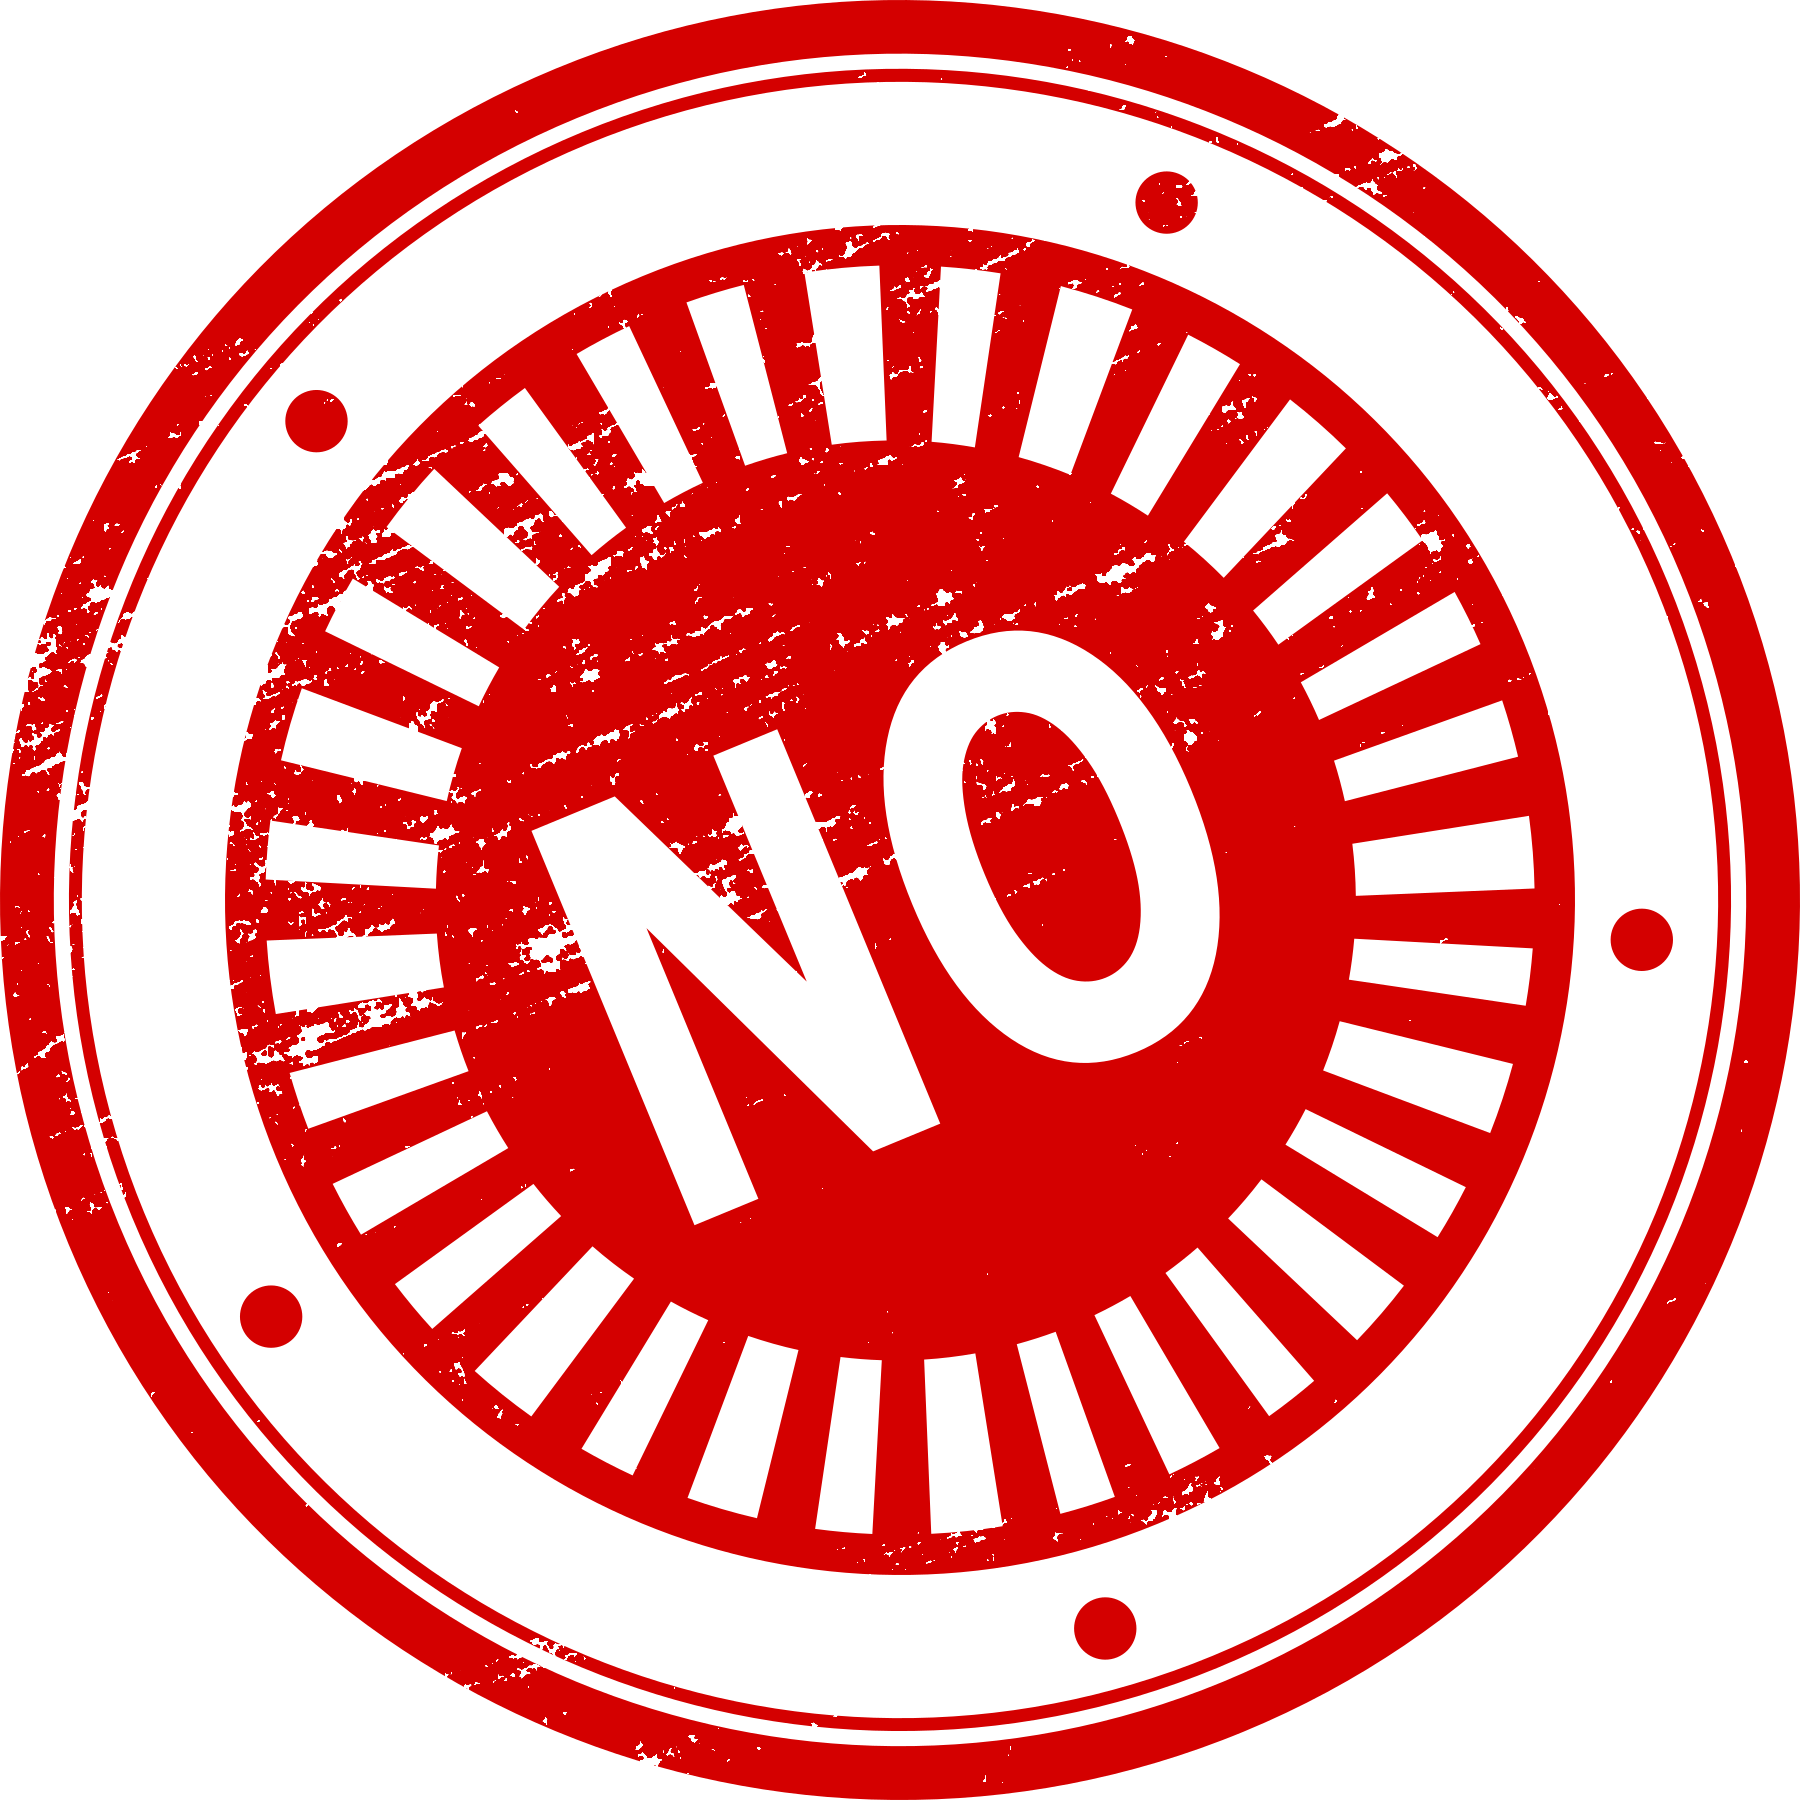 8 Yes No Stamp Png Transparent Onlygfx Com